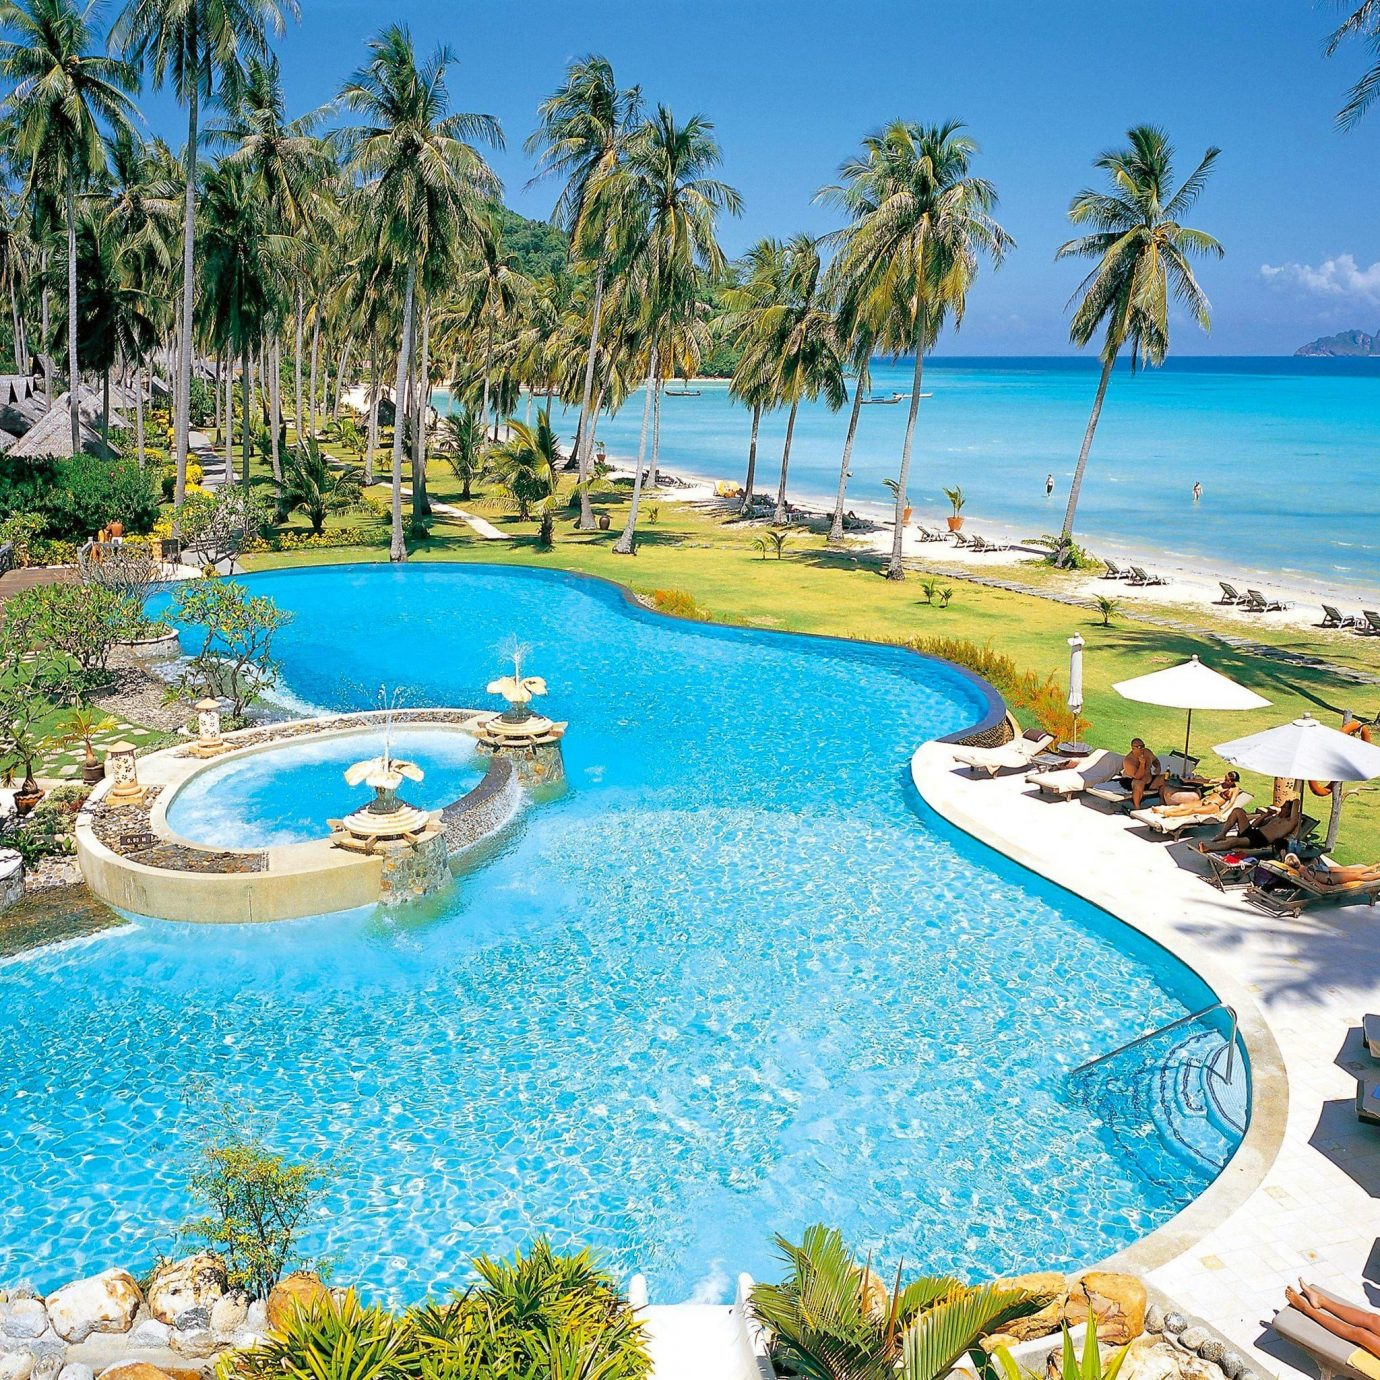 Beach Beachfront Island Ocean Pool Resort Romantic Sea Tropical Waterfront tree water umbrella palm chair lawn reef Nature leisure swimming pool caribbean lined swimming resort town Lagoon blue Garden shore surrounded shade